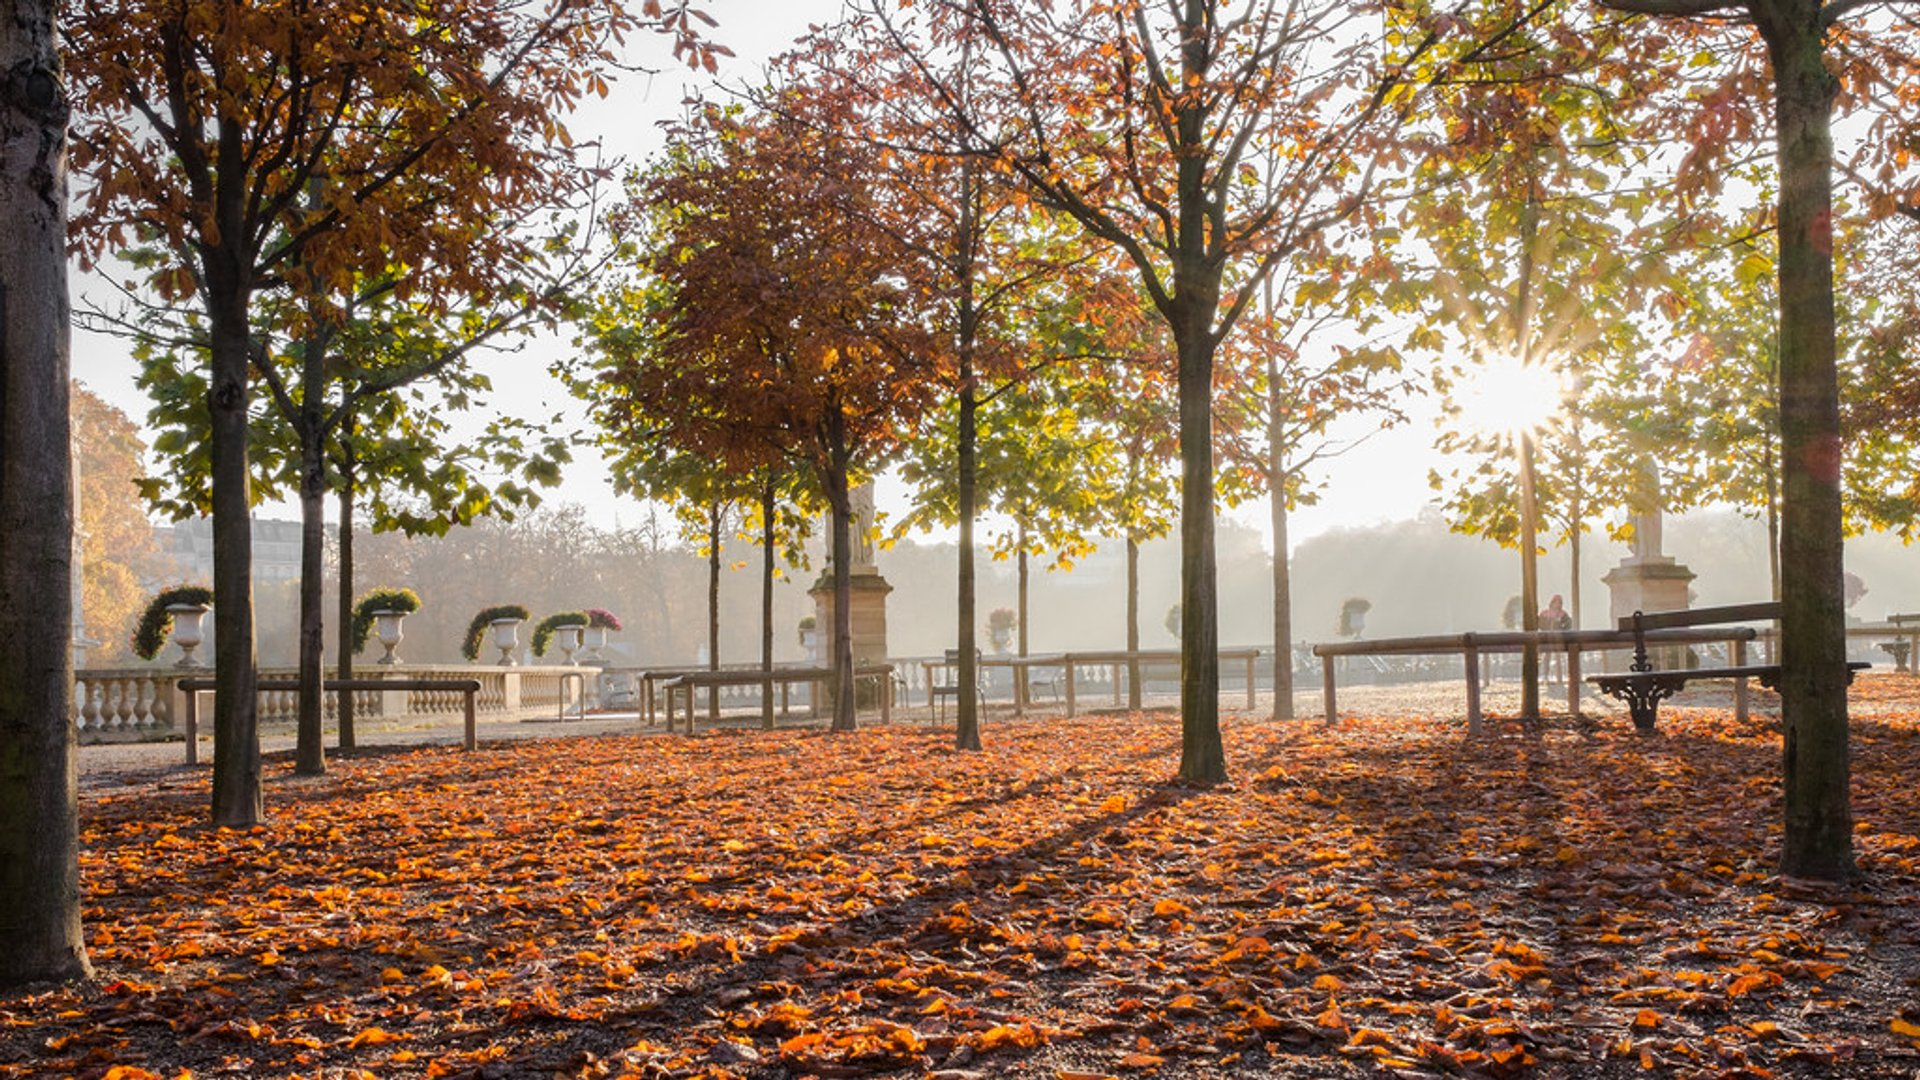 Parks and Gardens in Autumn Foliage in Paris 2019 - Best Time